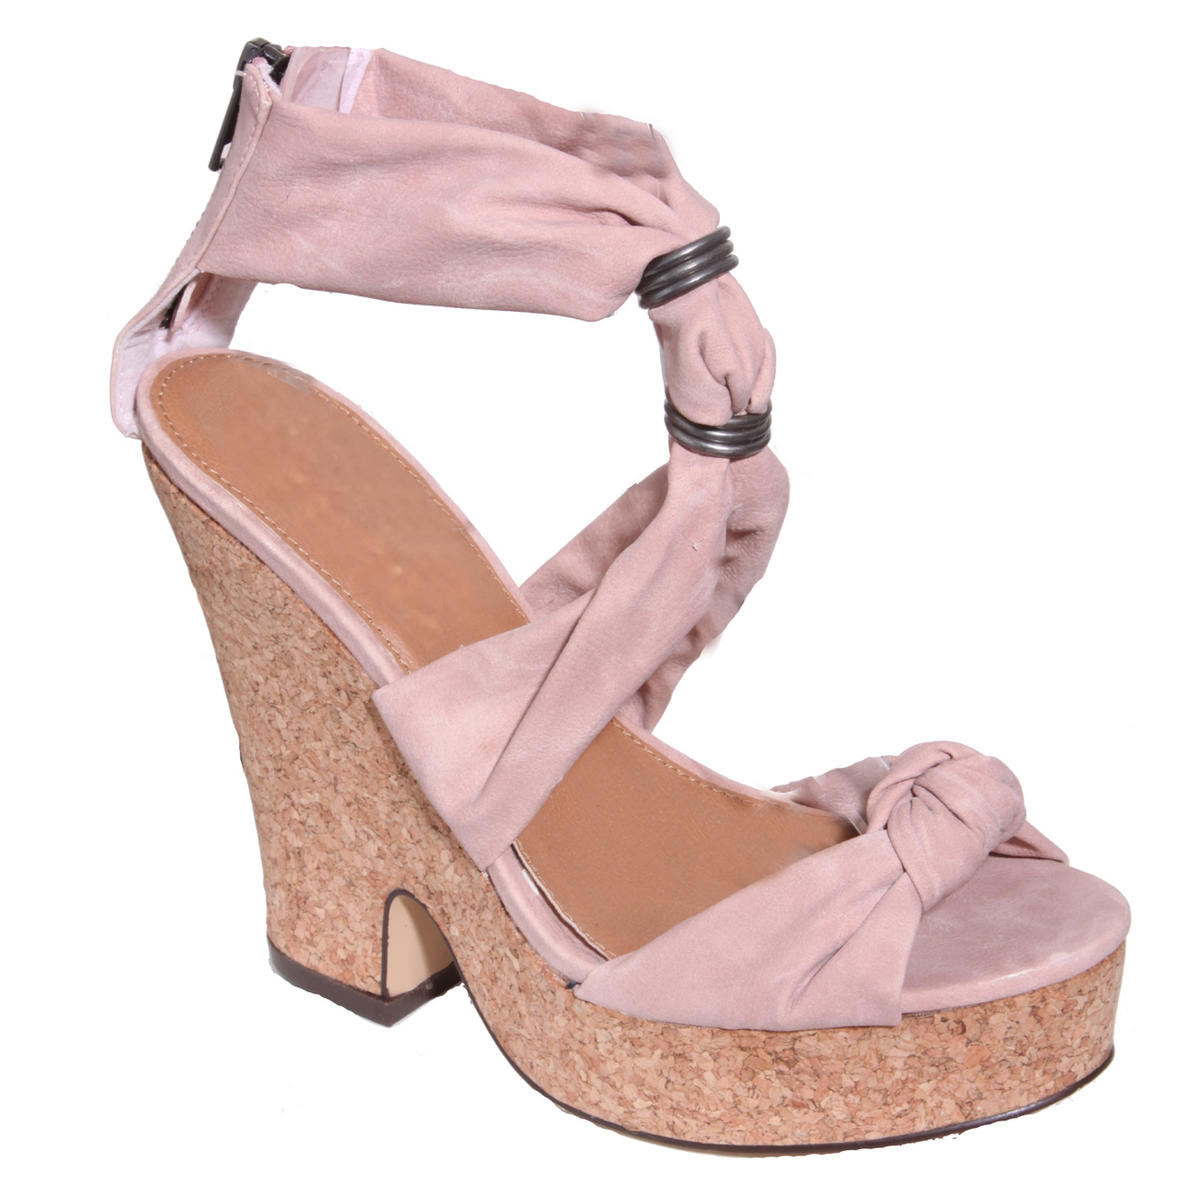 SIZE 3 ONLY Nude Platform Wedge Sandal  Preview